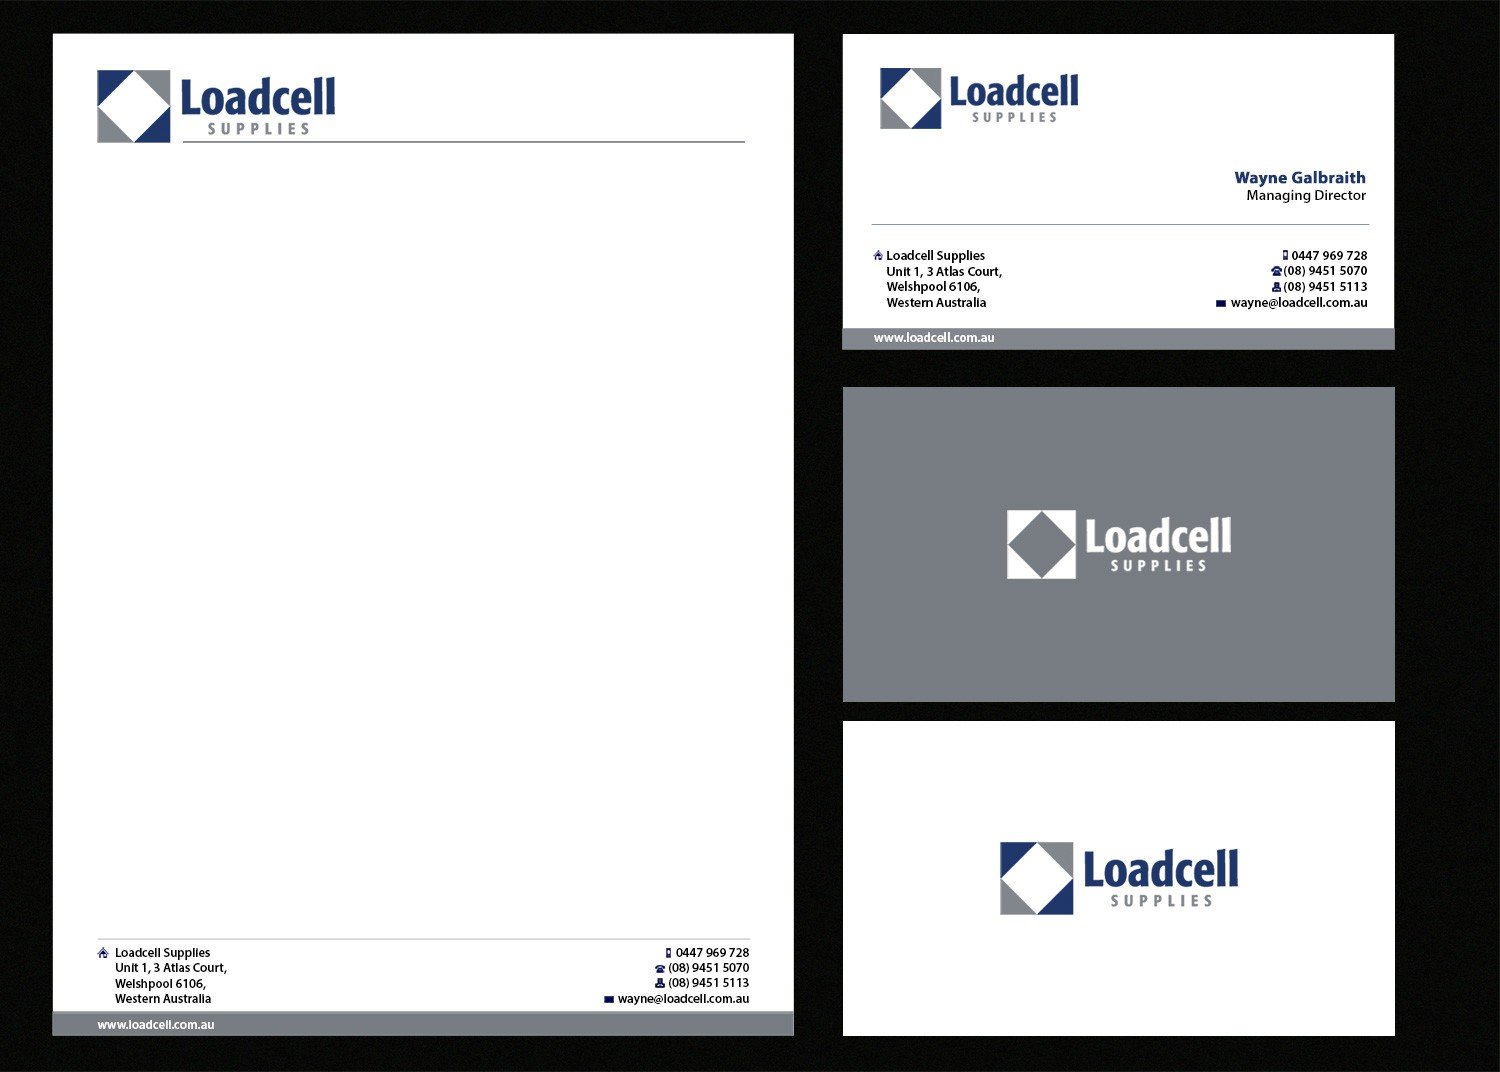 New stationery wanted for Loadcell Supplies